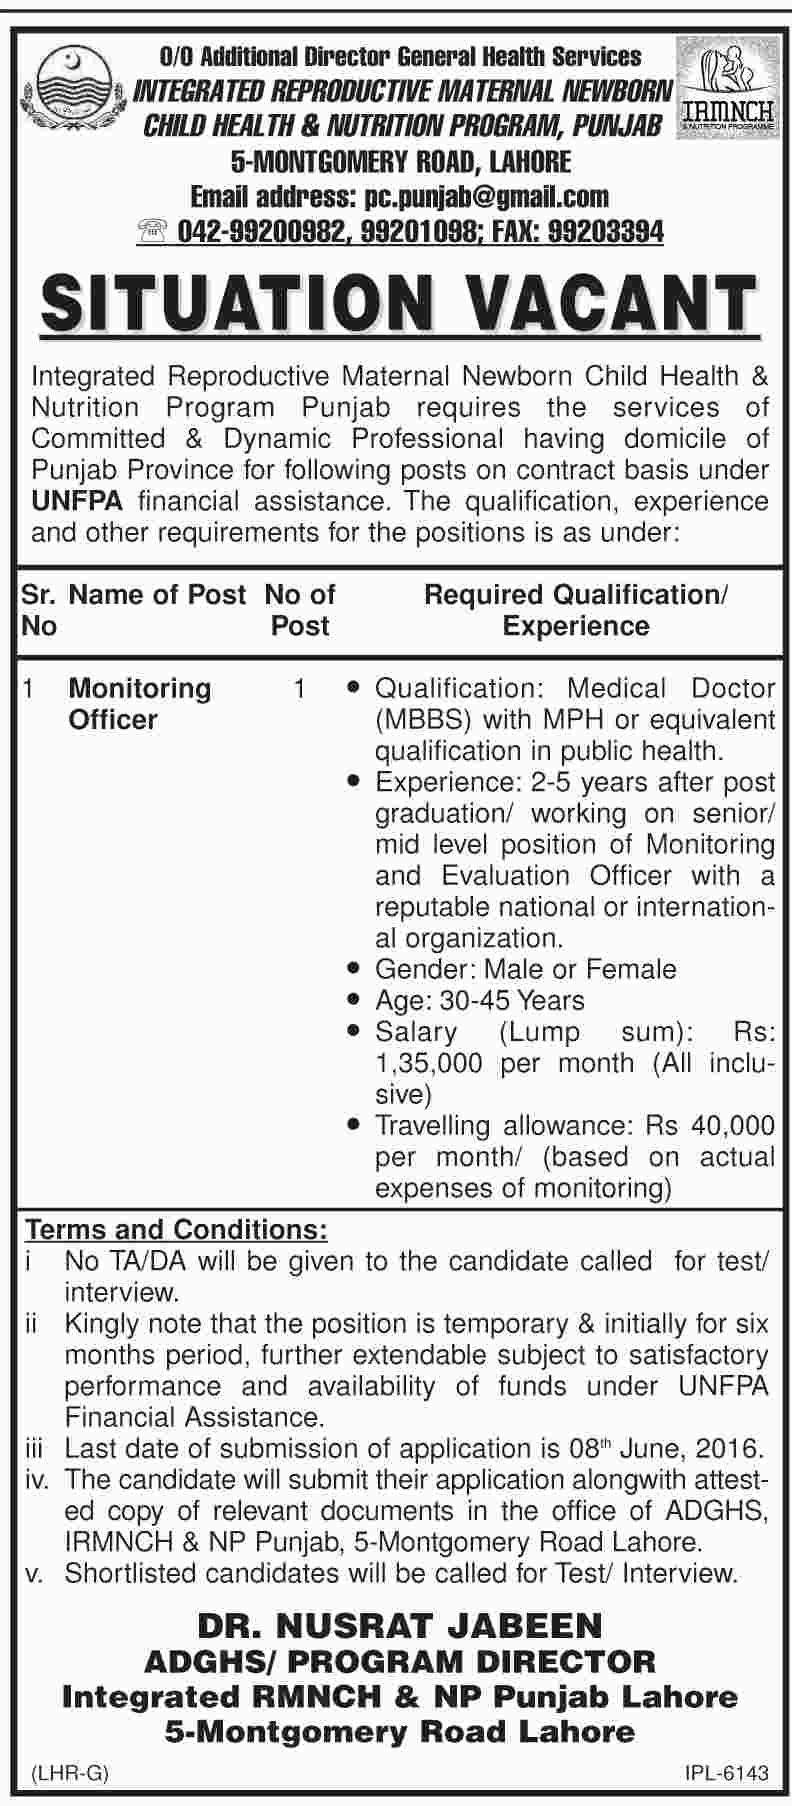 Integrated RMNCH and NP Punjab Lahore Jobs